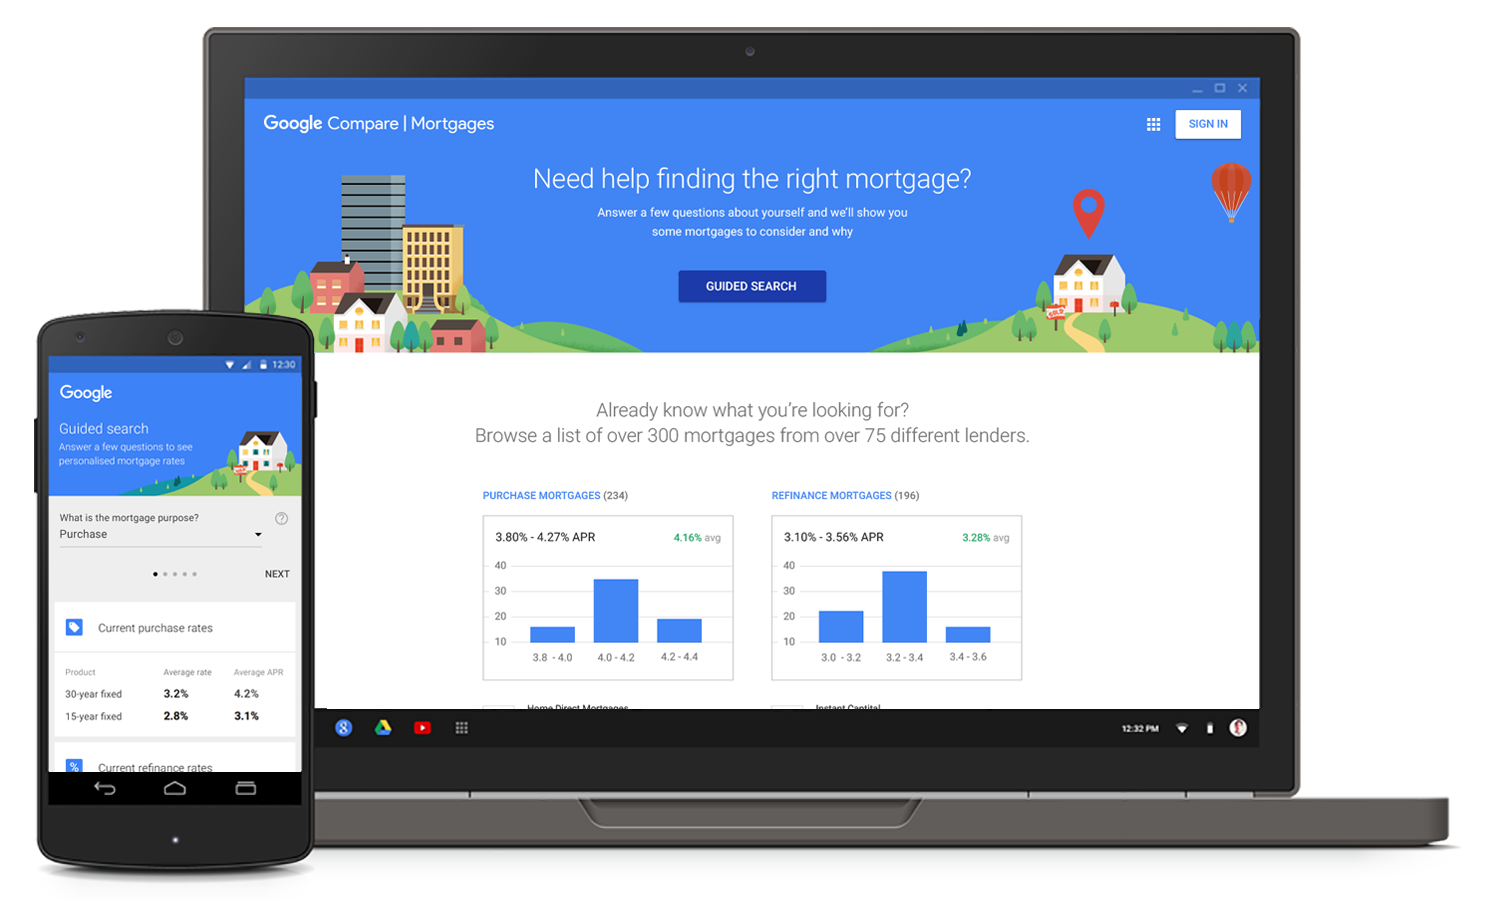 Google Becomes Mortgage Broker Launches Online Tool Mortgage Comparison Best Mortgage Rates Today Mortgage Brokers